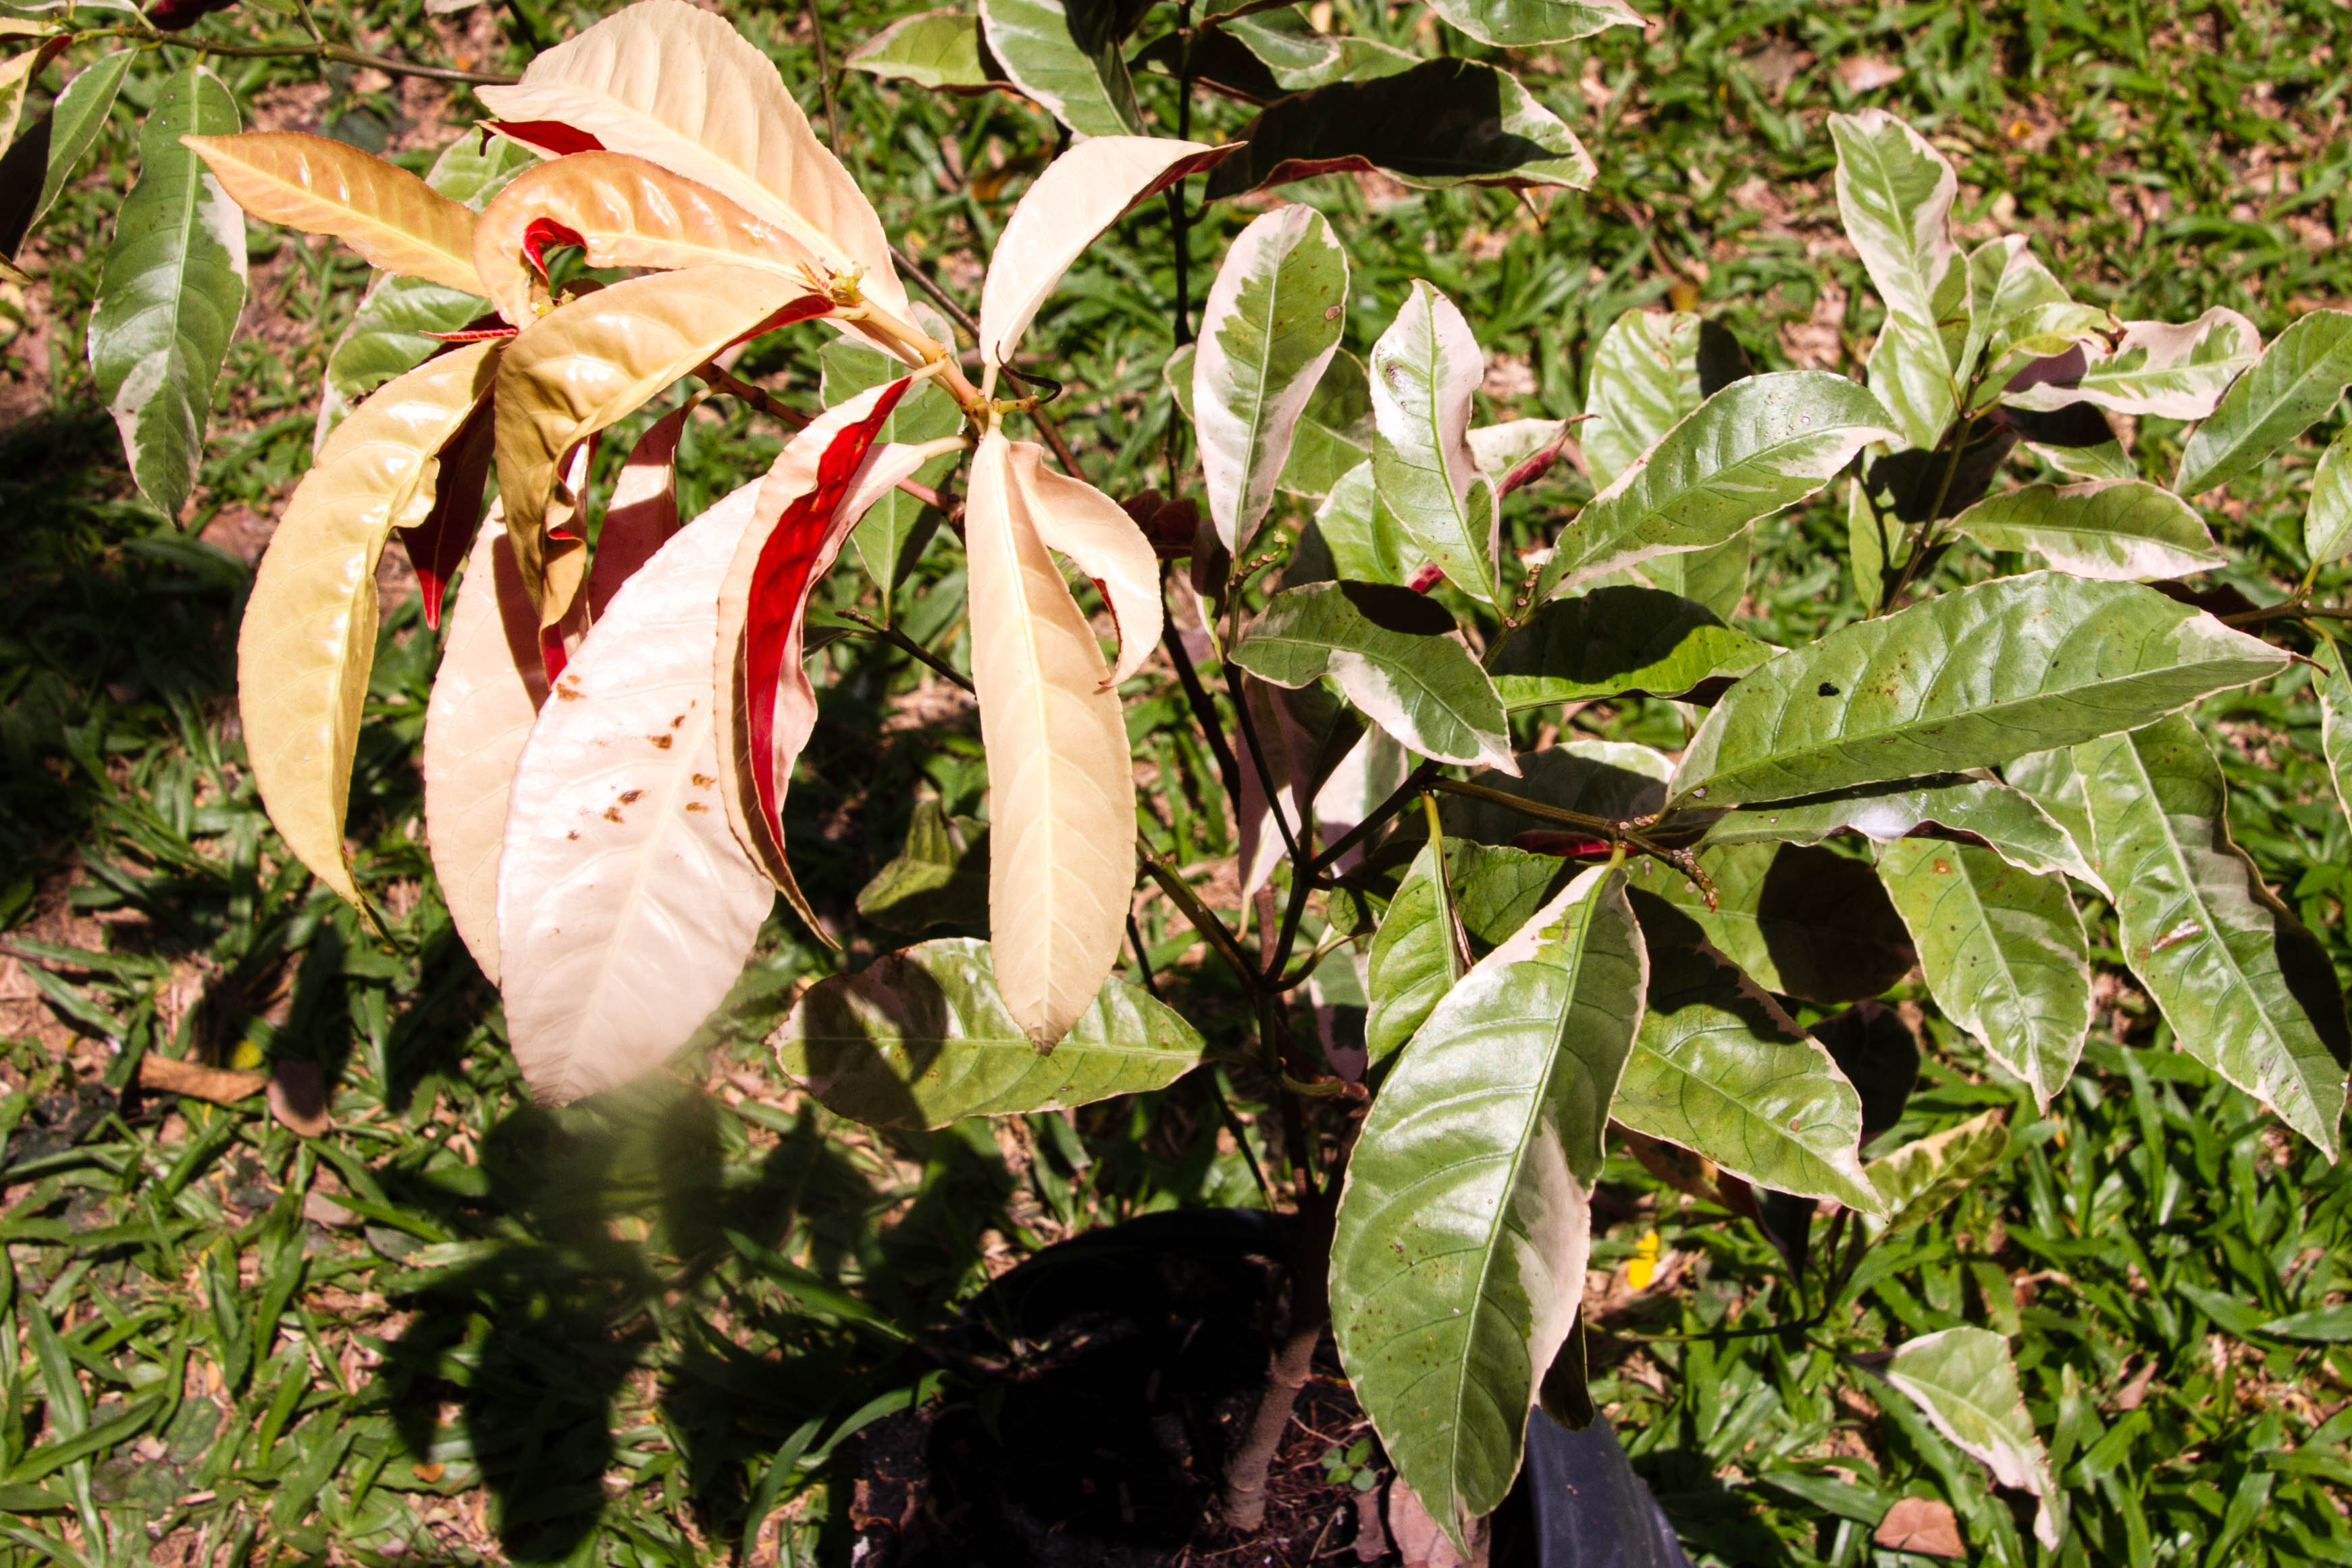 Excoecaria cochinchinensis Lour., Chinese croton, กระบือเจ็ดตัว